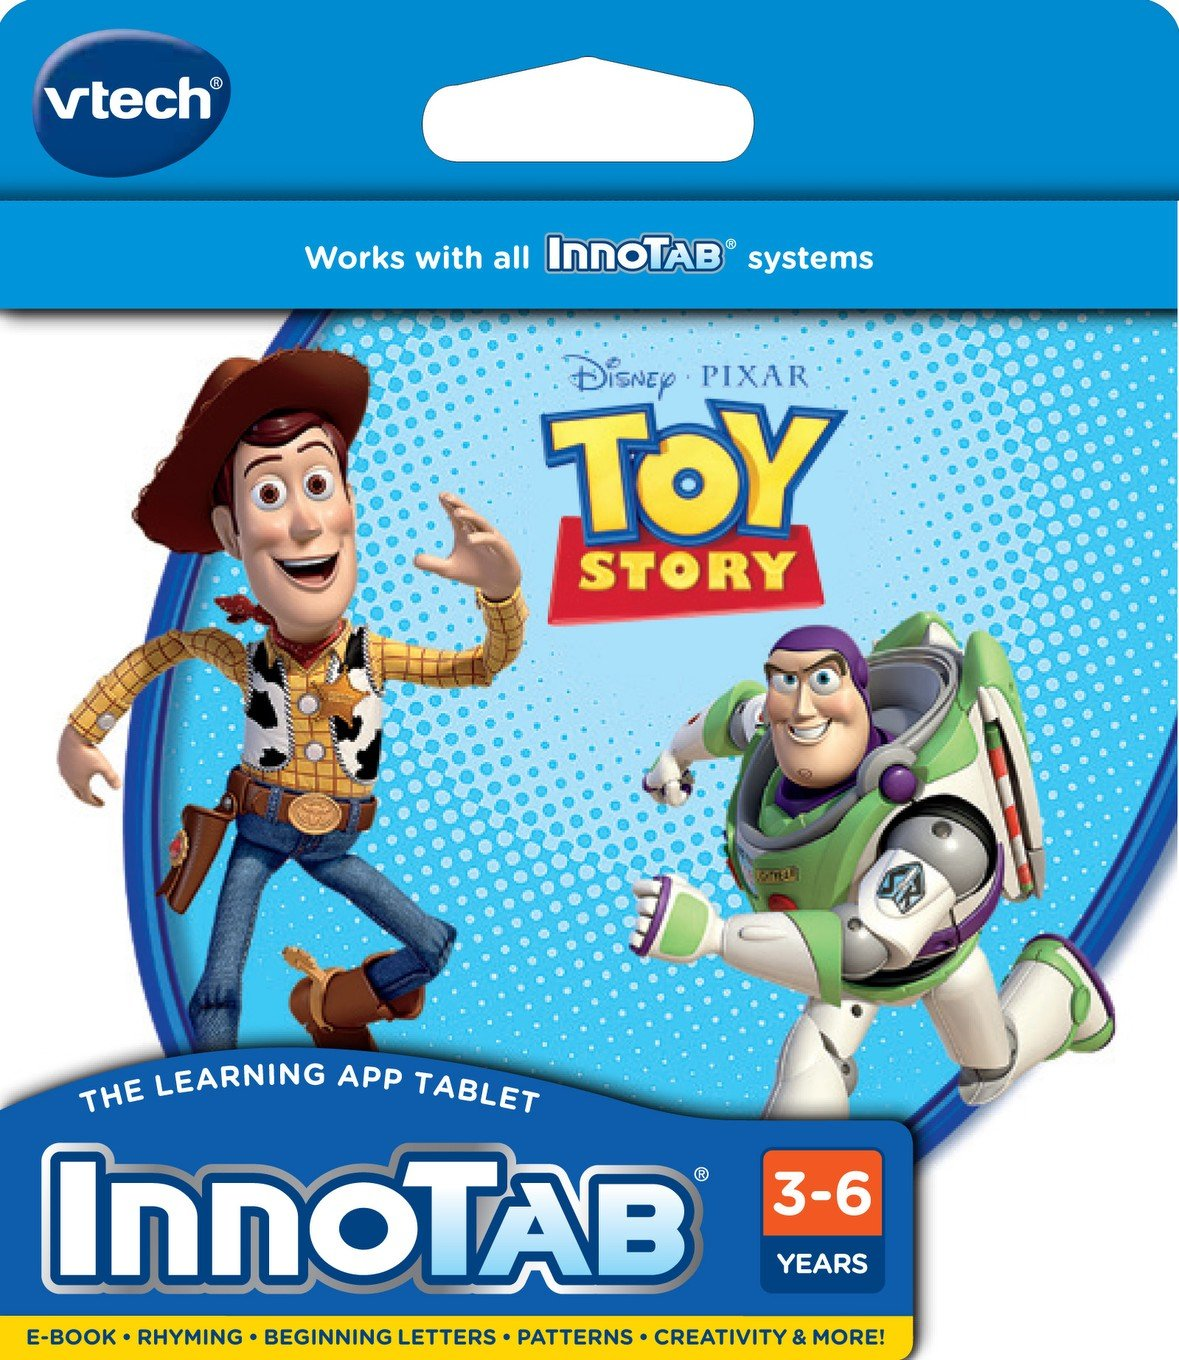 VTech - InnoTab Software - Disney's Toy Story by VTech (Image #1)